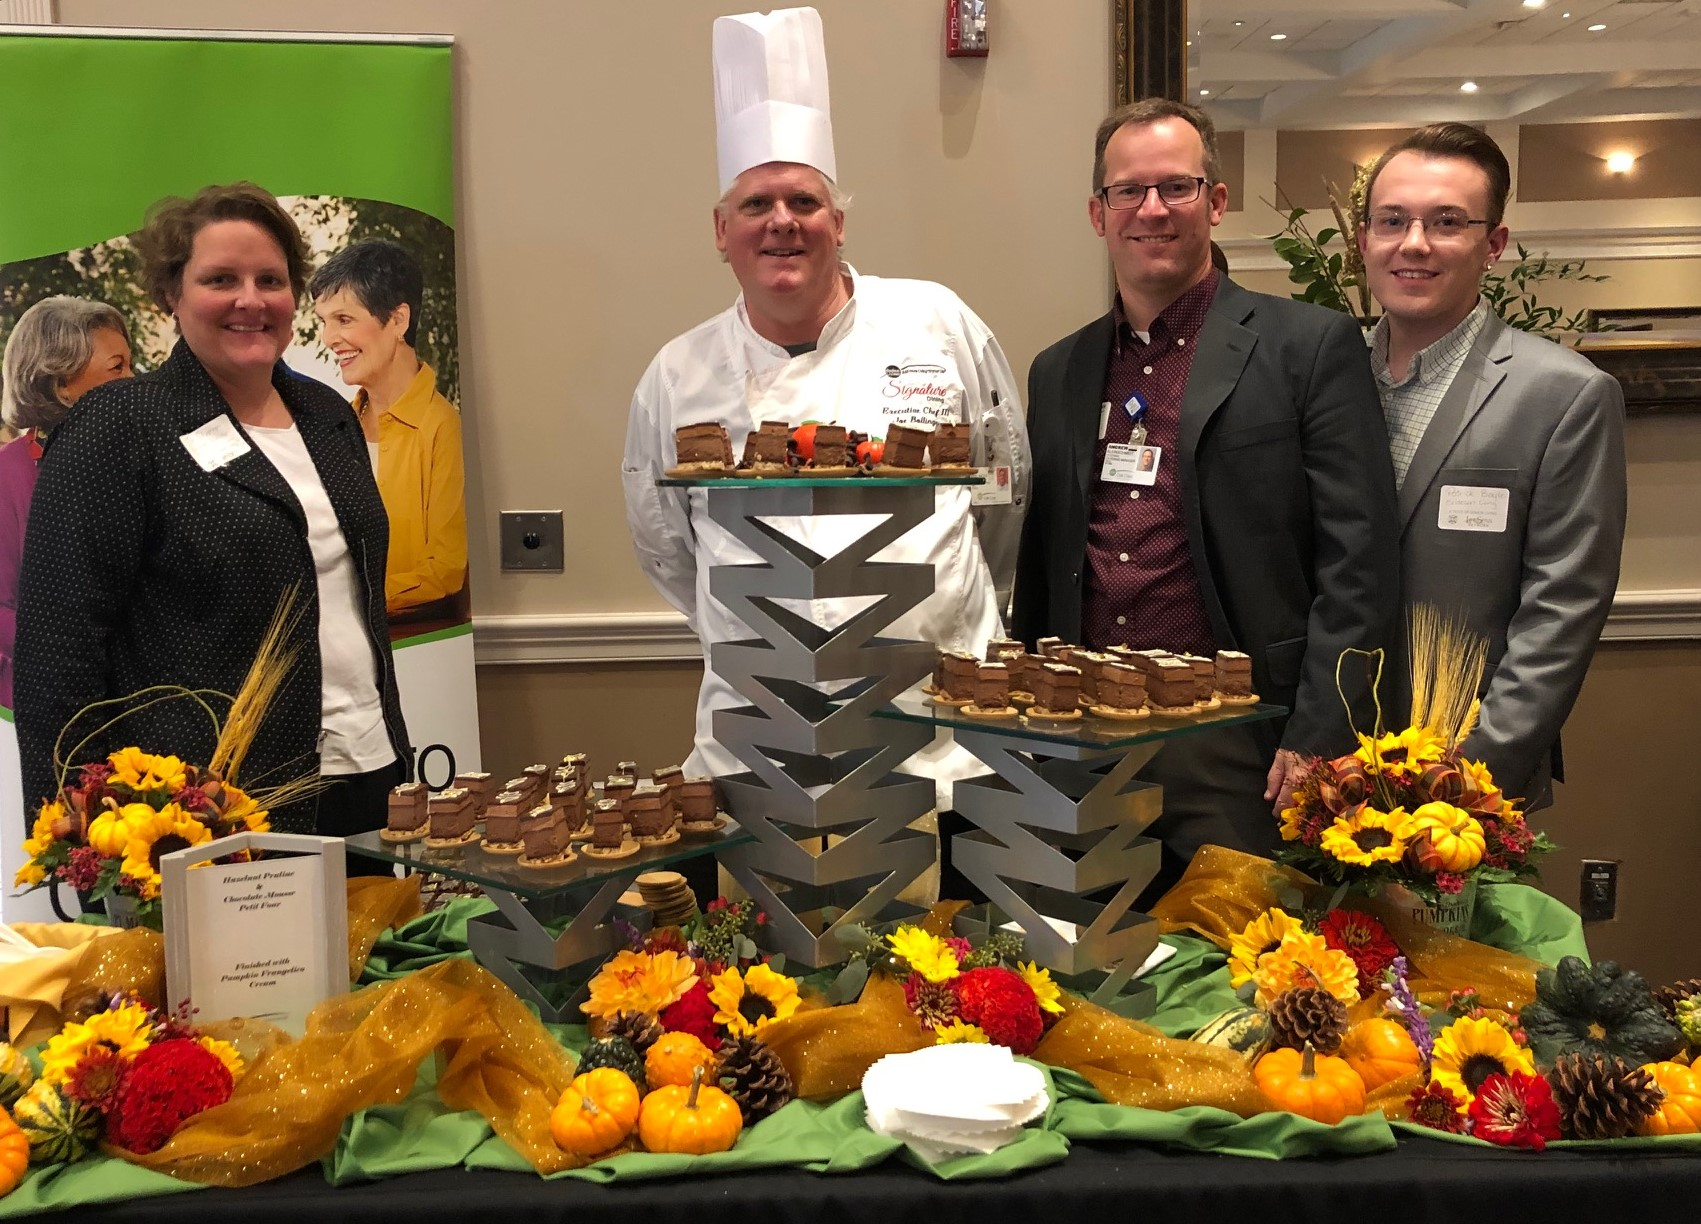 Culinary team professionals from Oak Crest are pictured in front of their award-winning Best Dessert entry at the LifeSpan 2019 A Taste of Senior Living competition on October 24.